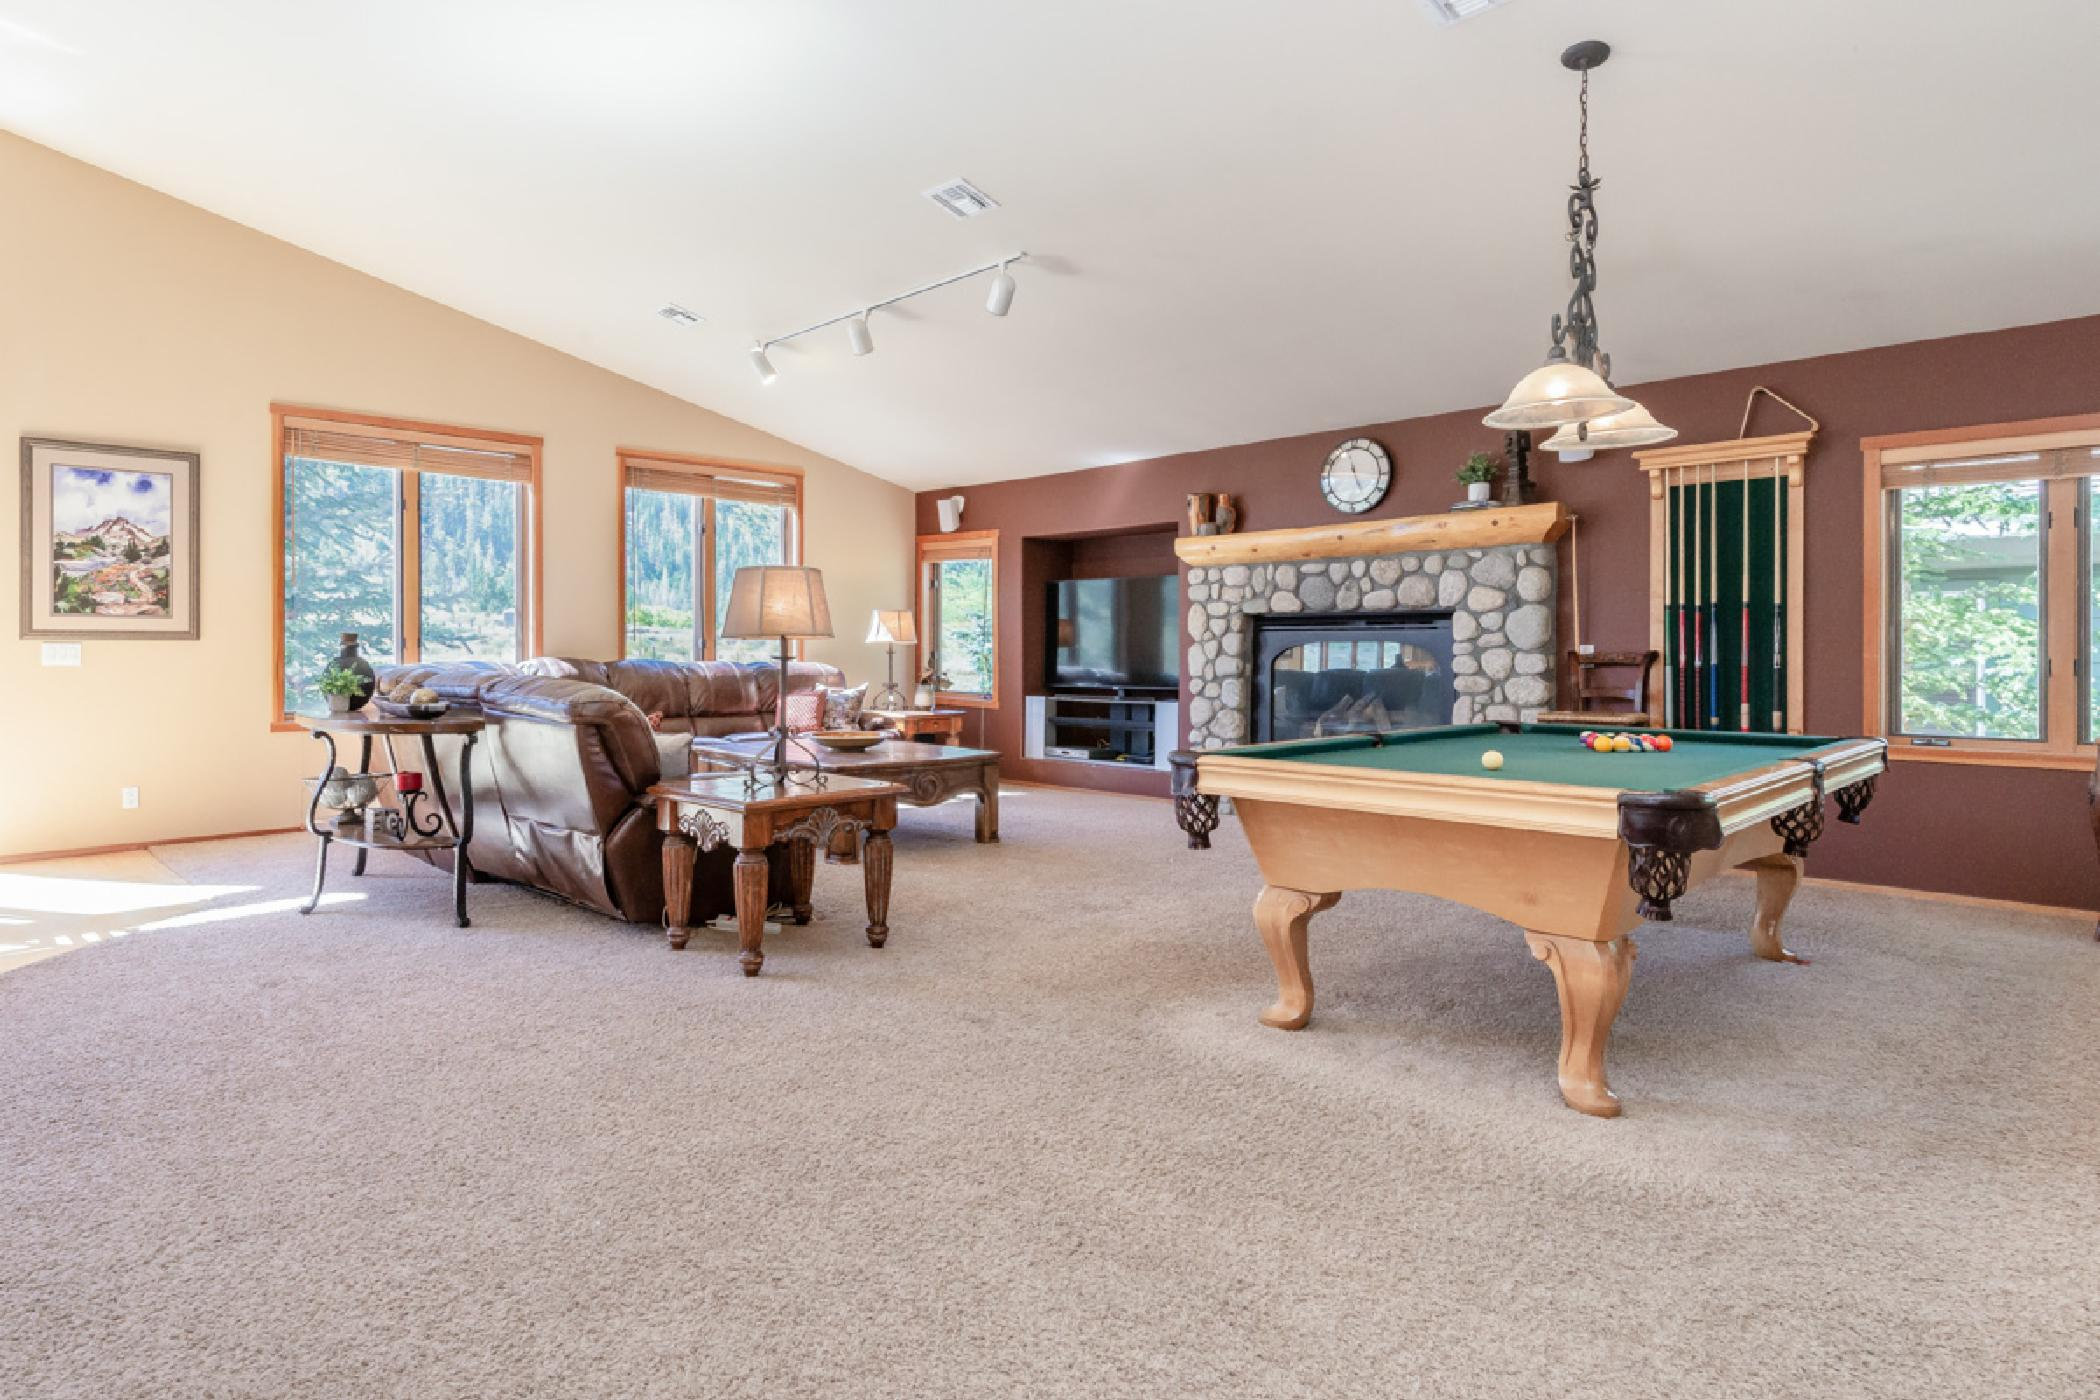 New Listing! Cozy 5 bedroom townhome with stunning mountain views, pool table and foosball